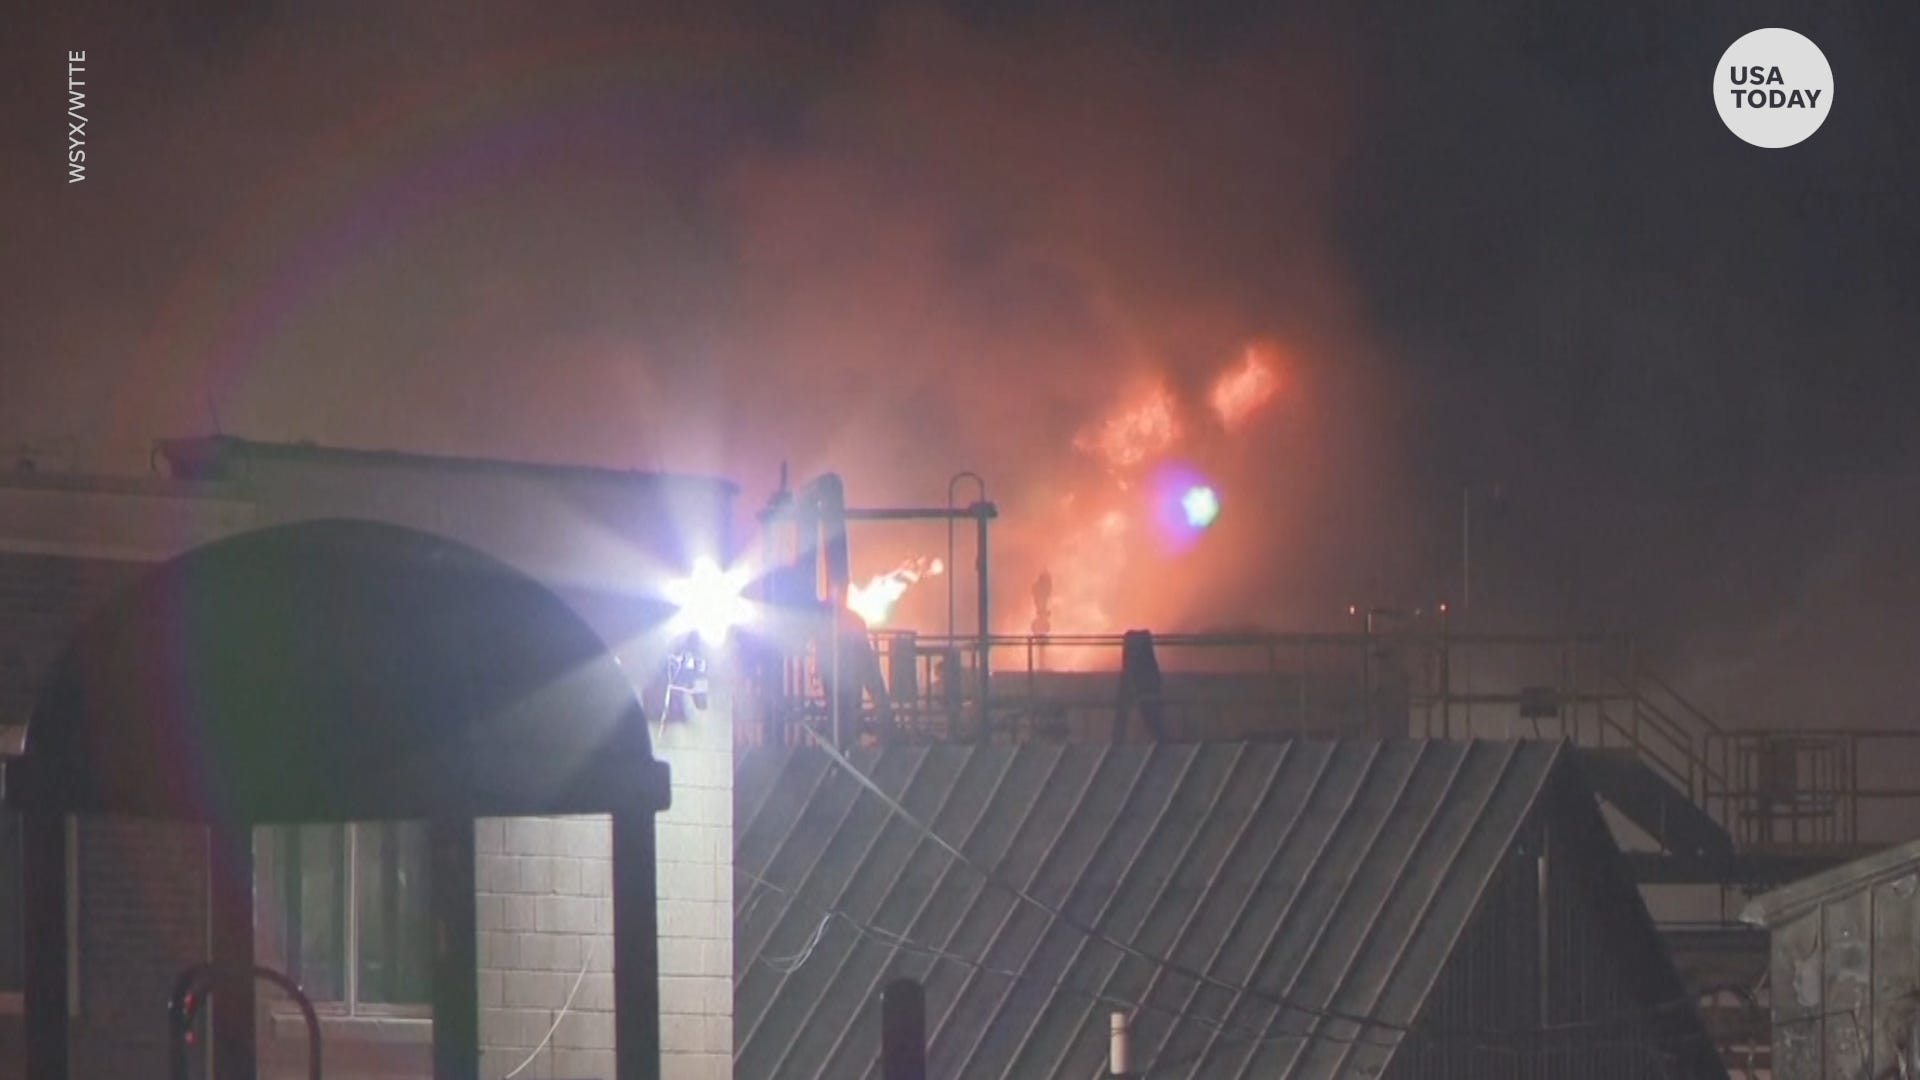 Ohio paint factory explosion, fire leaves 8 injured, door missing